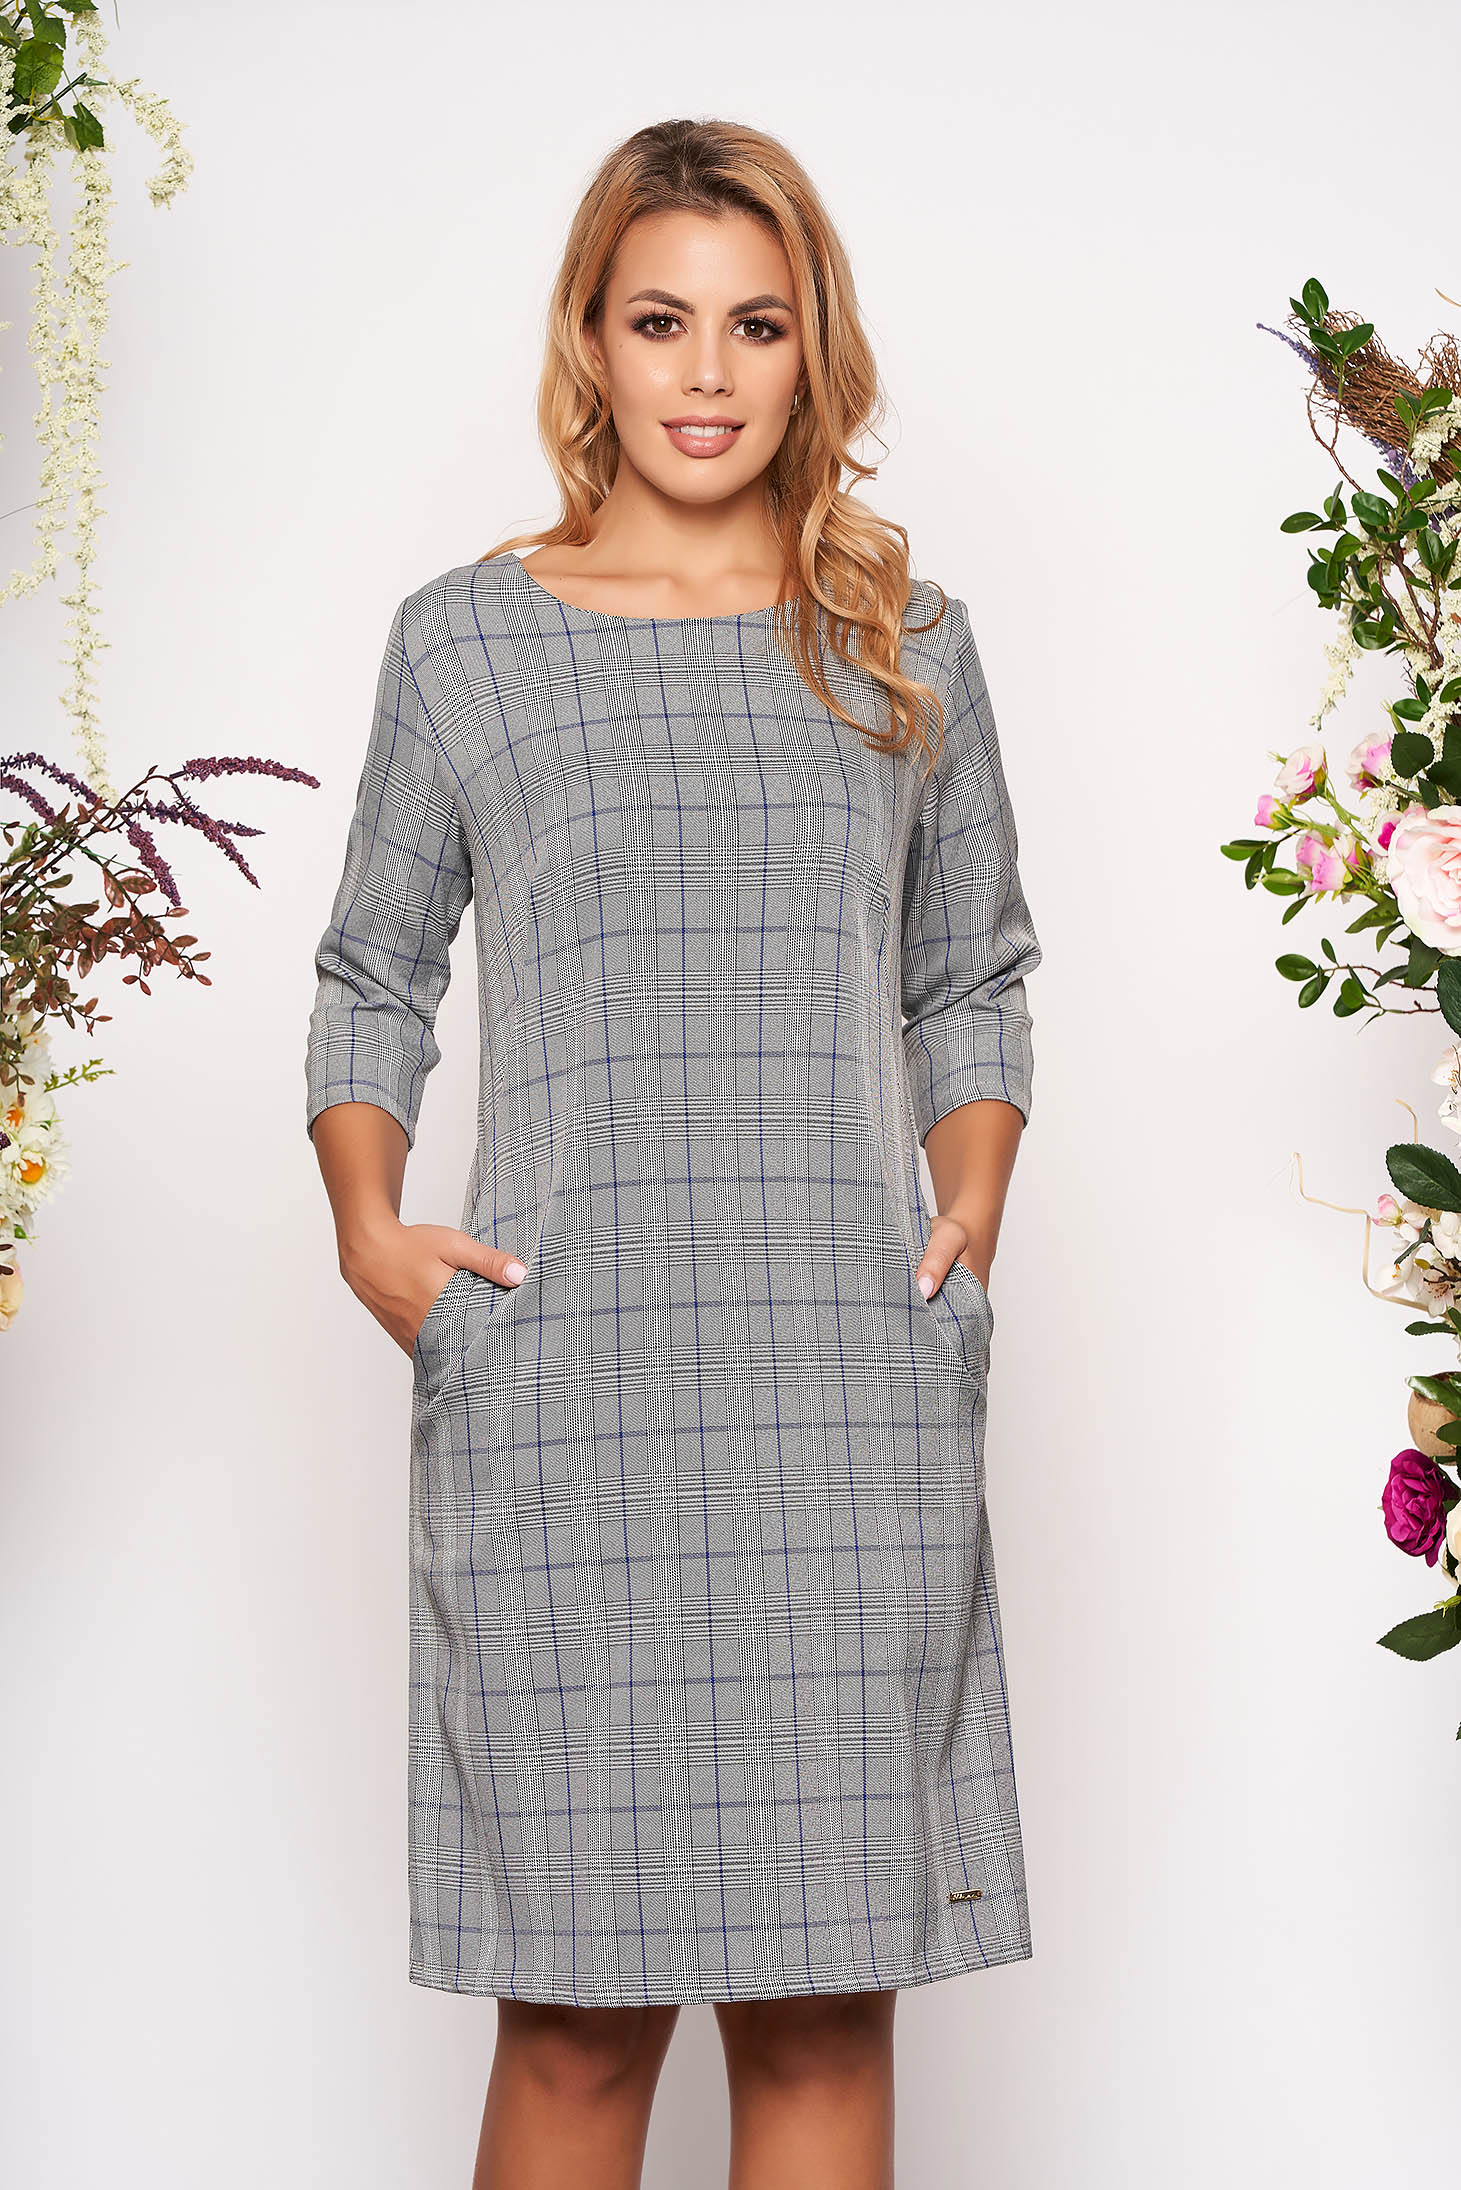 Blue dress daily a-line cloth thin fabric with chequers with pockets without clothing